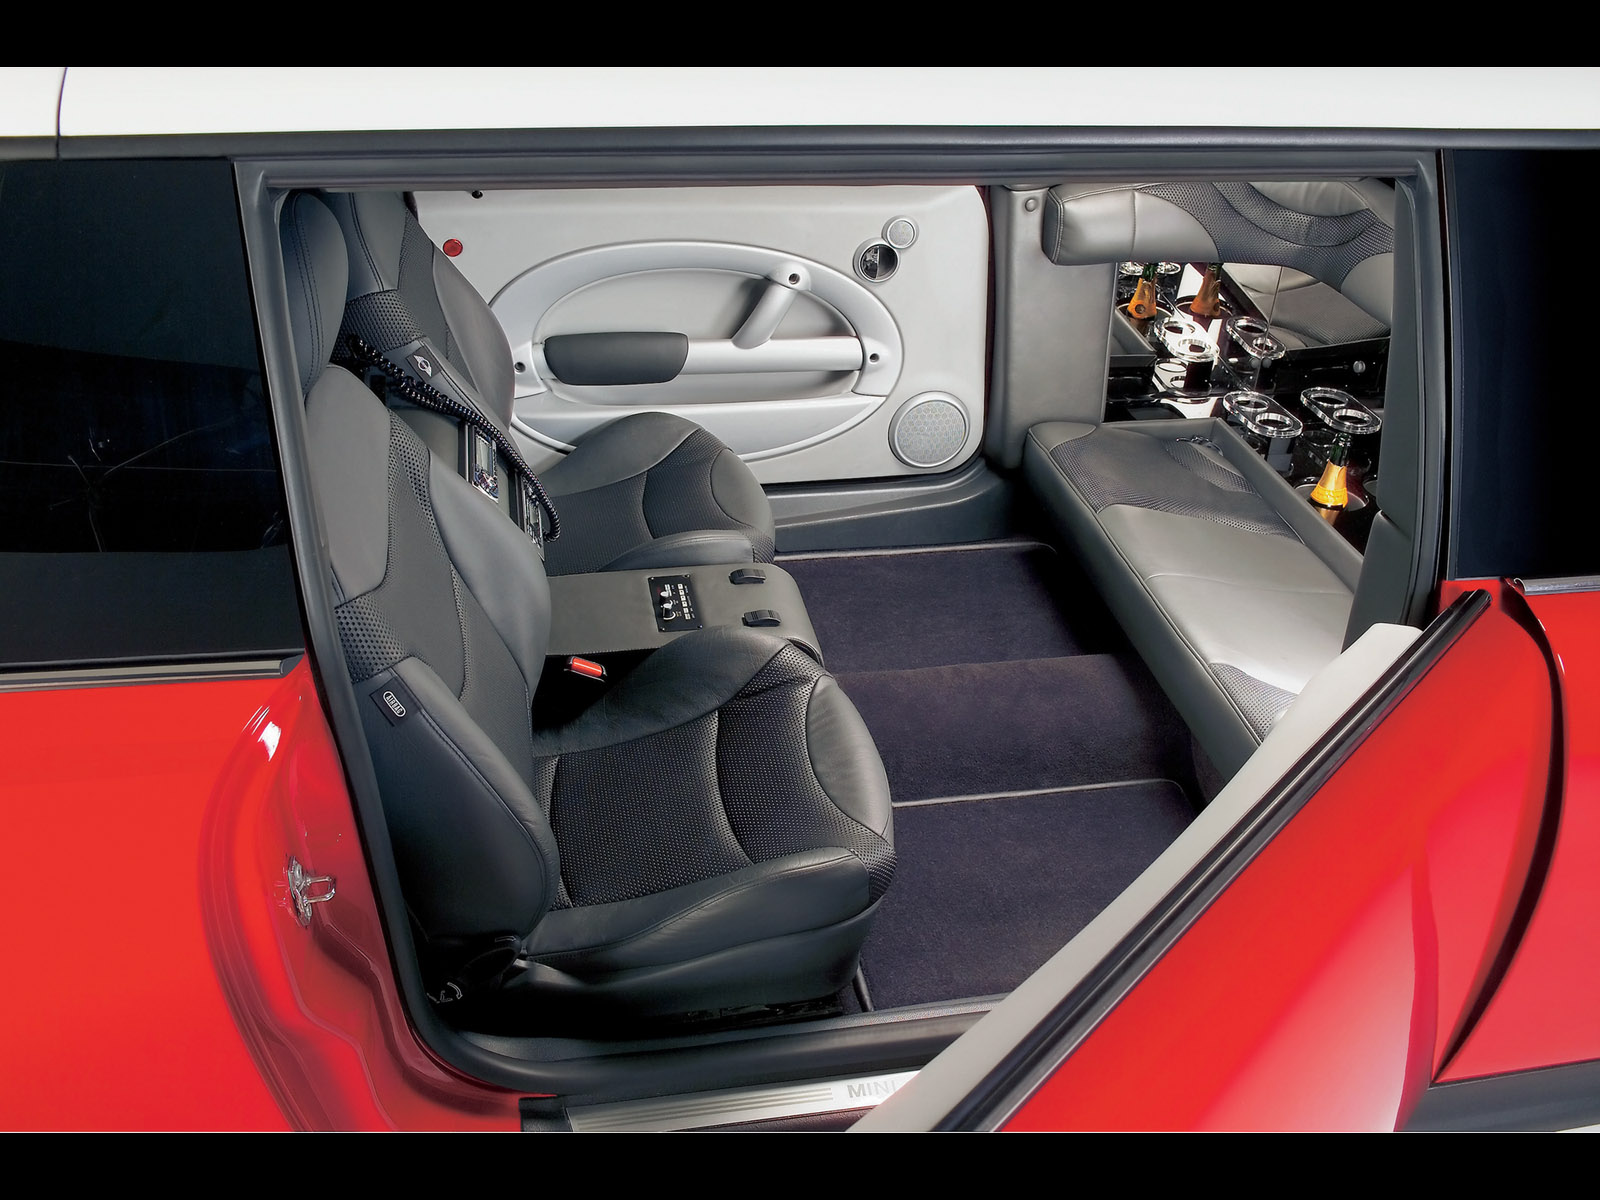 Mini XXL Stretch Limo - Interior Seating - 1600x1200 Wallpaper